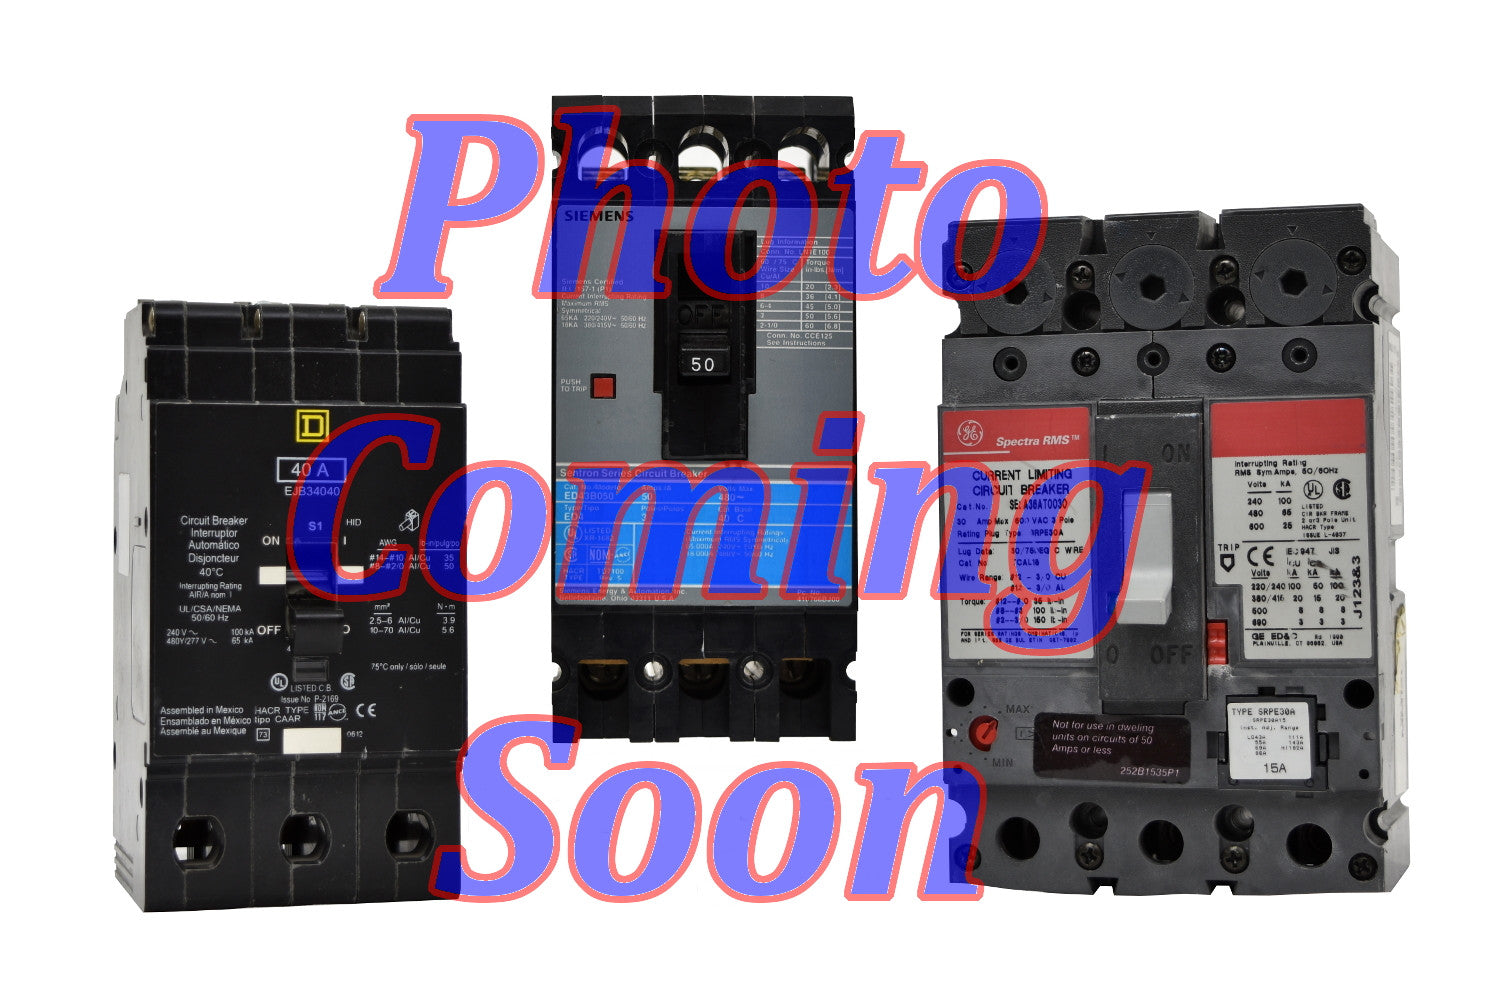 General Electric FCS326TE090R1 Circuit Breakers